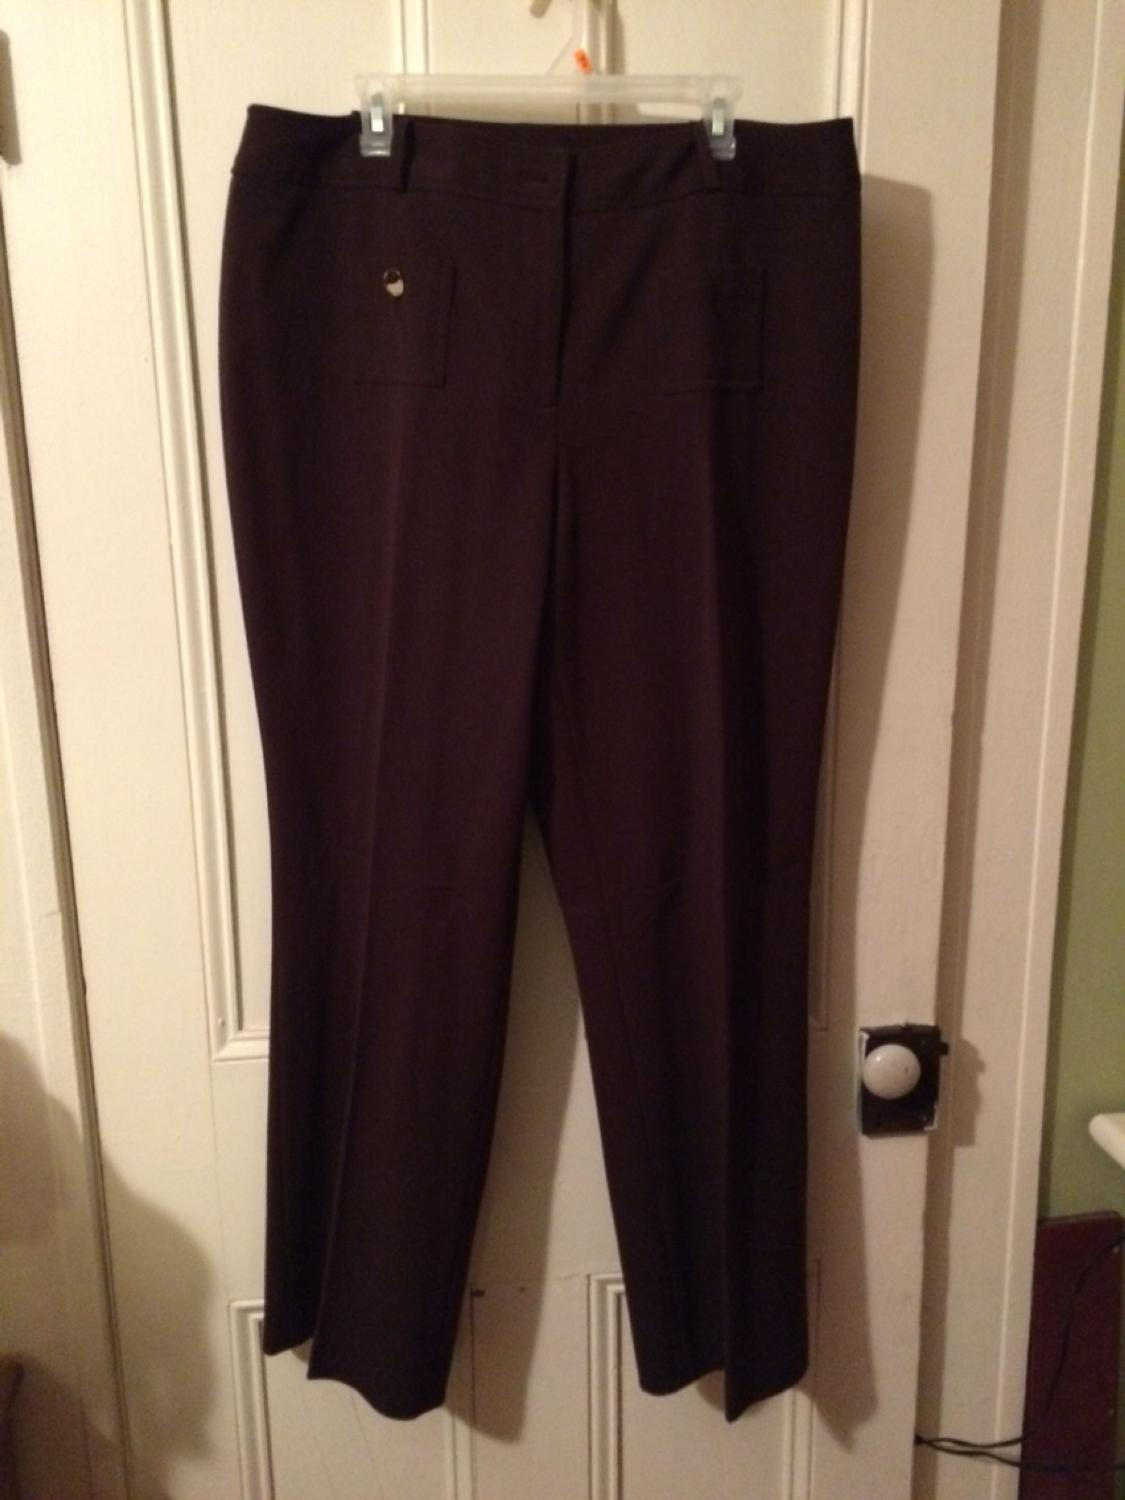 16dc79146a6eaa Best Brown Slacks Size 18. Button Missing On Front Pocket for sale in  Hanover, Ontario for 2019